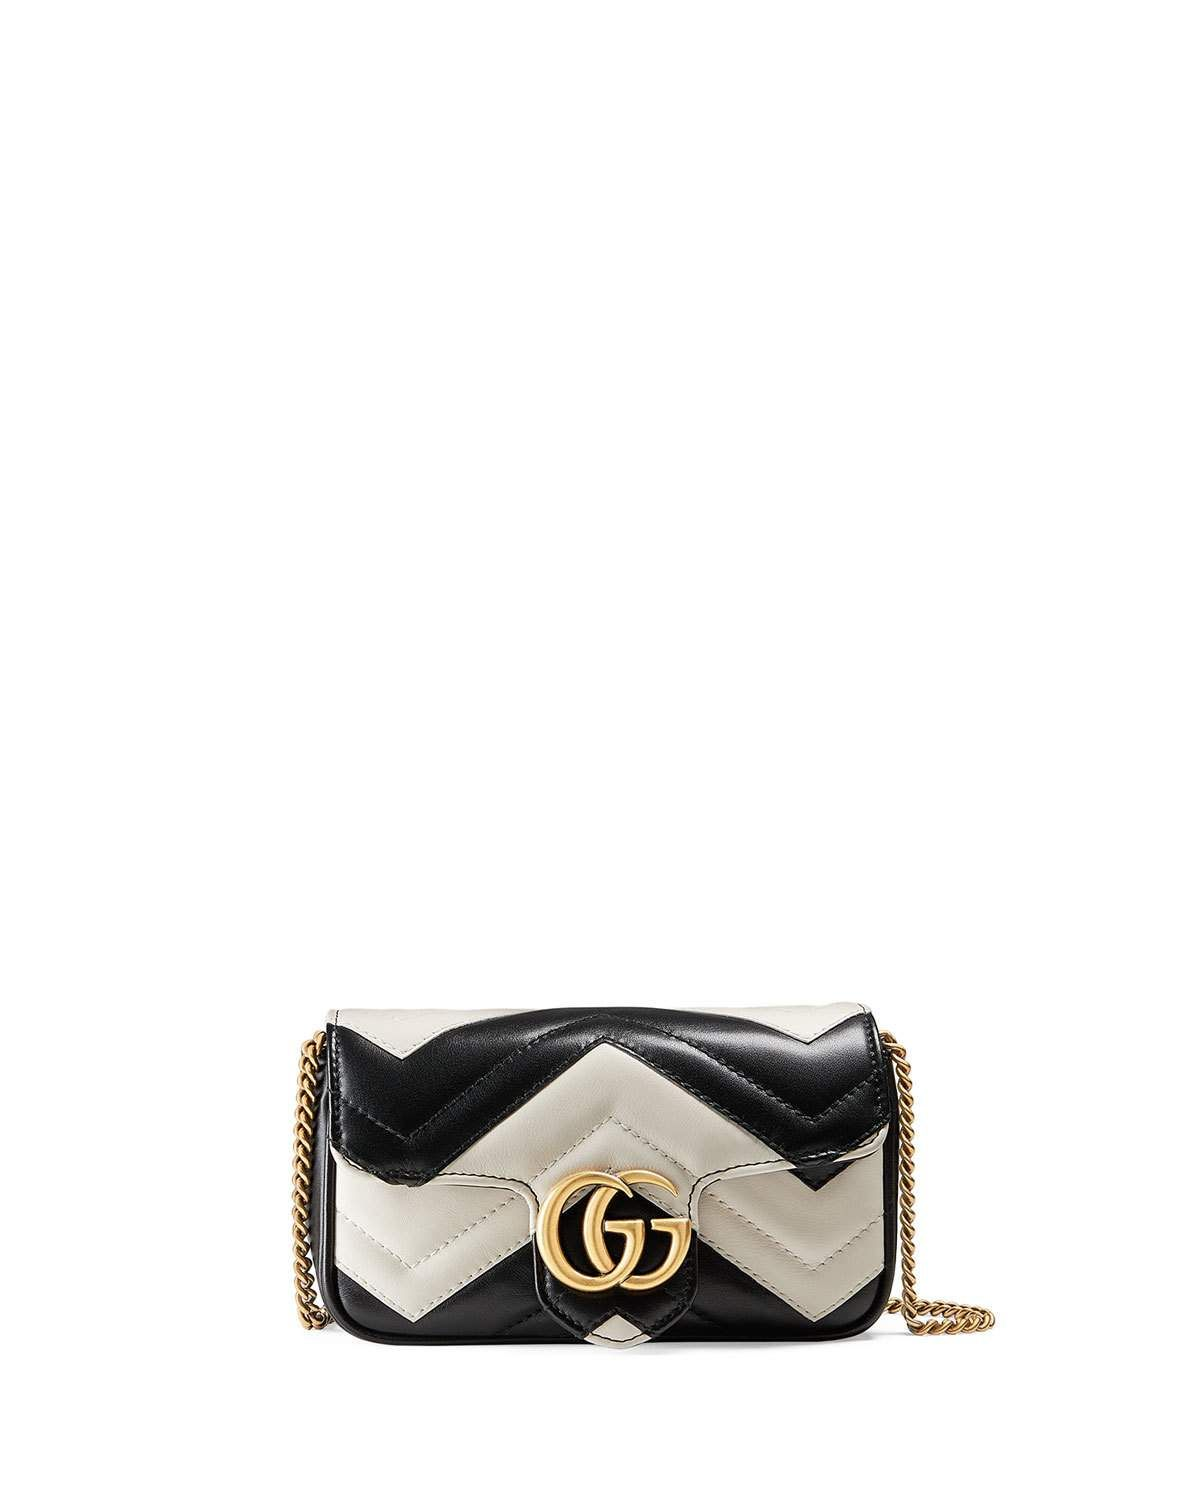 aca7a7c9b6e Gucci GG Marmont Matelassé Leather Super Mini Bag